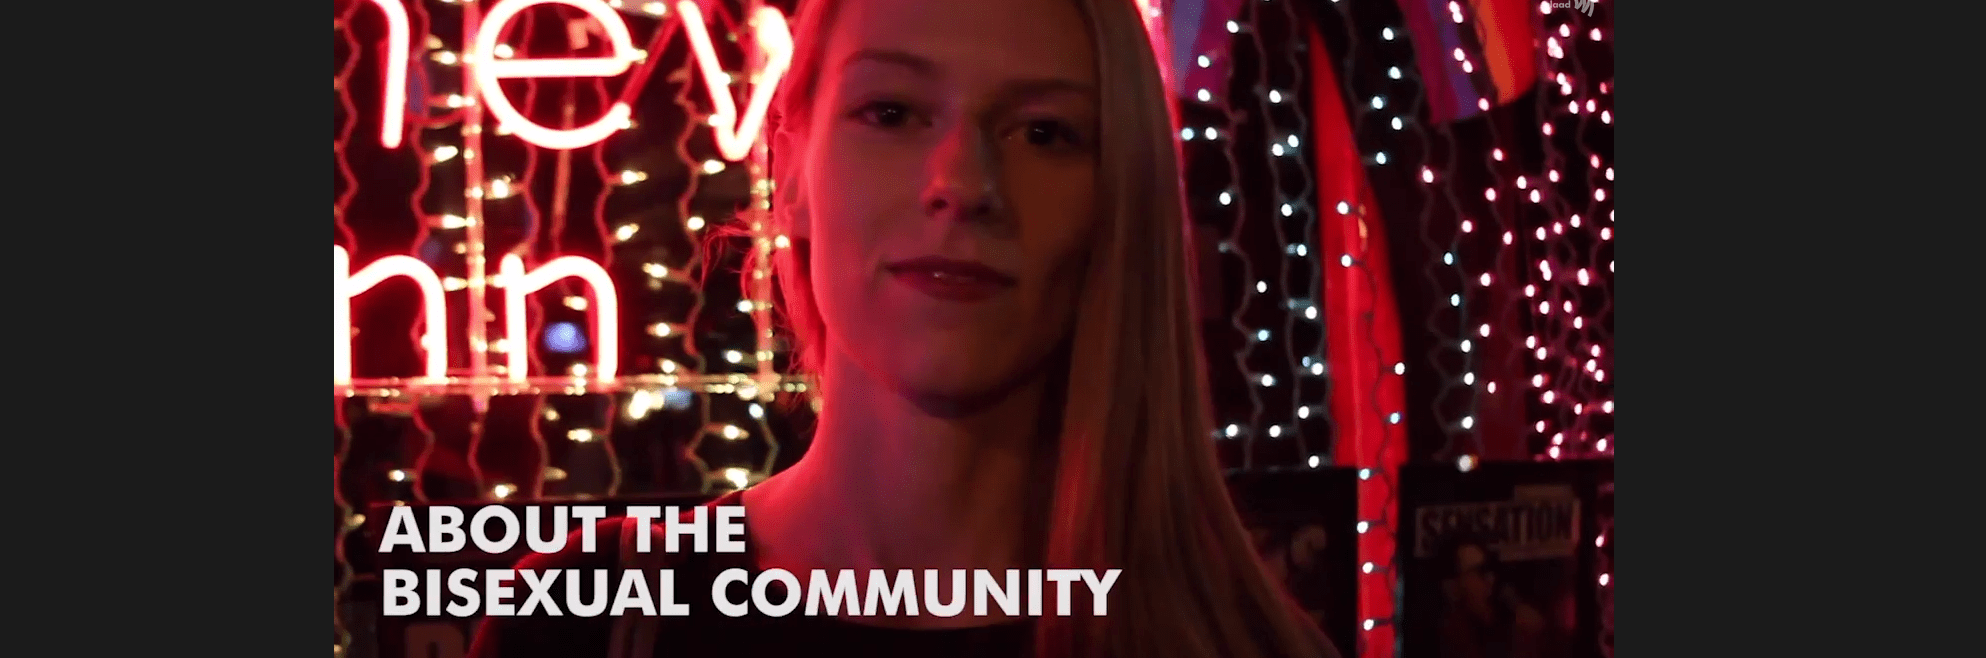 Bisexual People Tell Their Stories at the iconic Stonewall Inn for #BiWeek